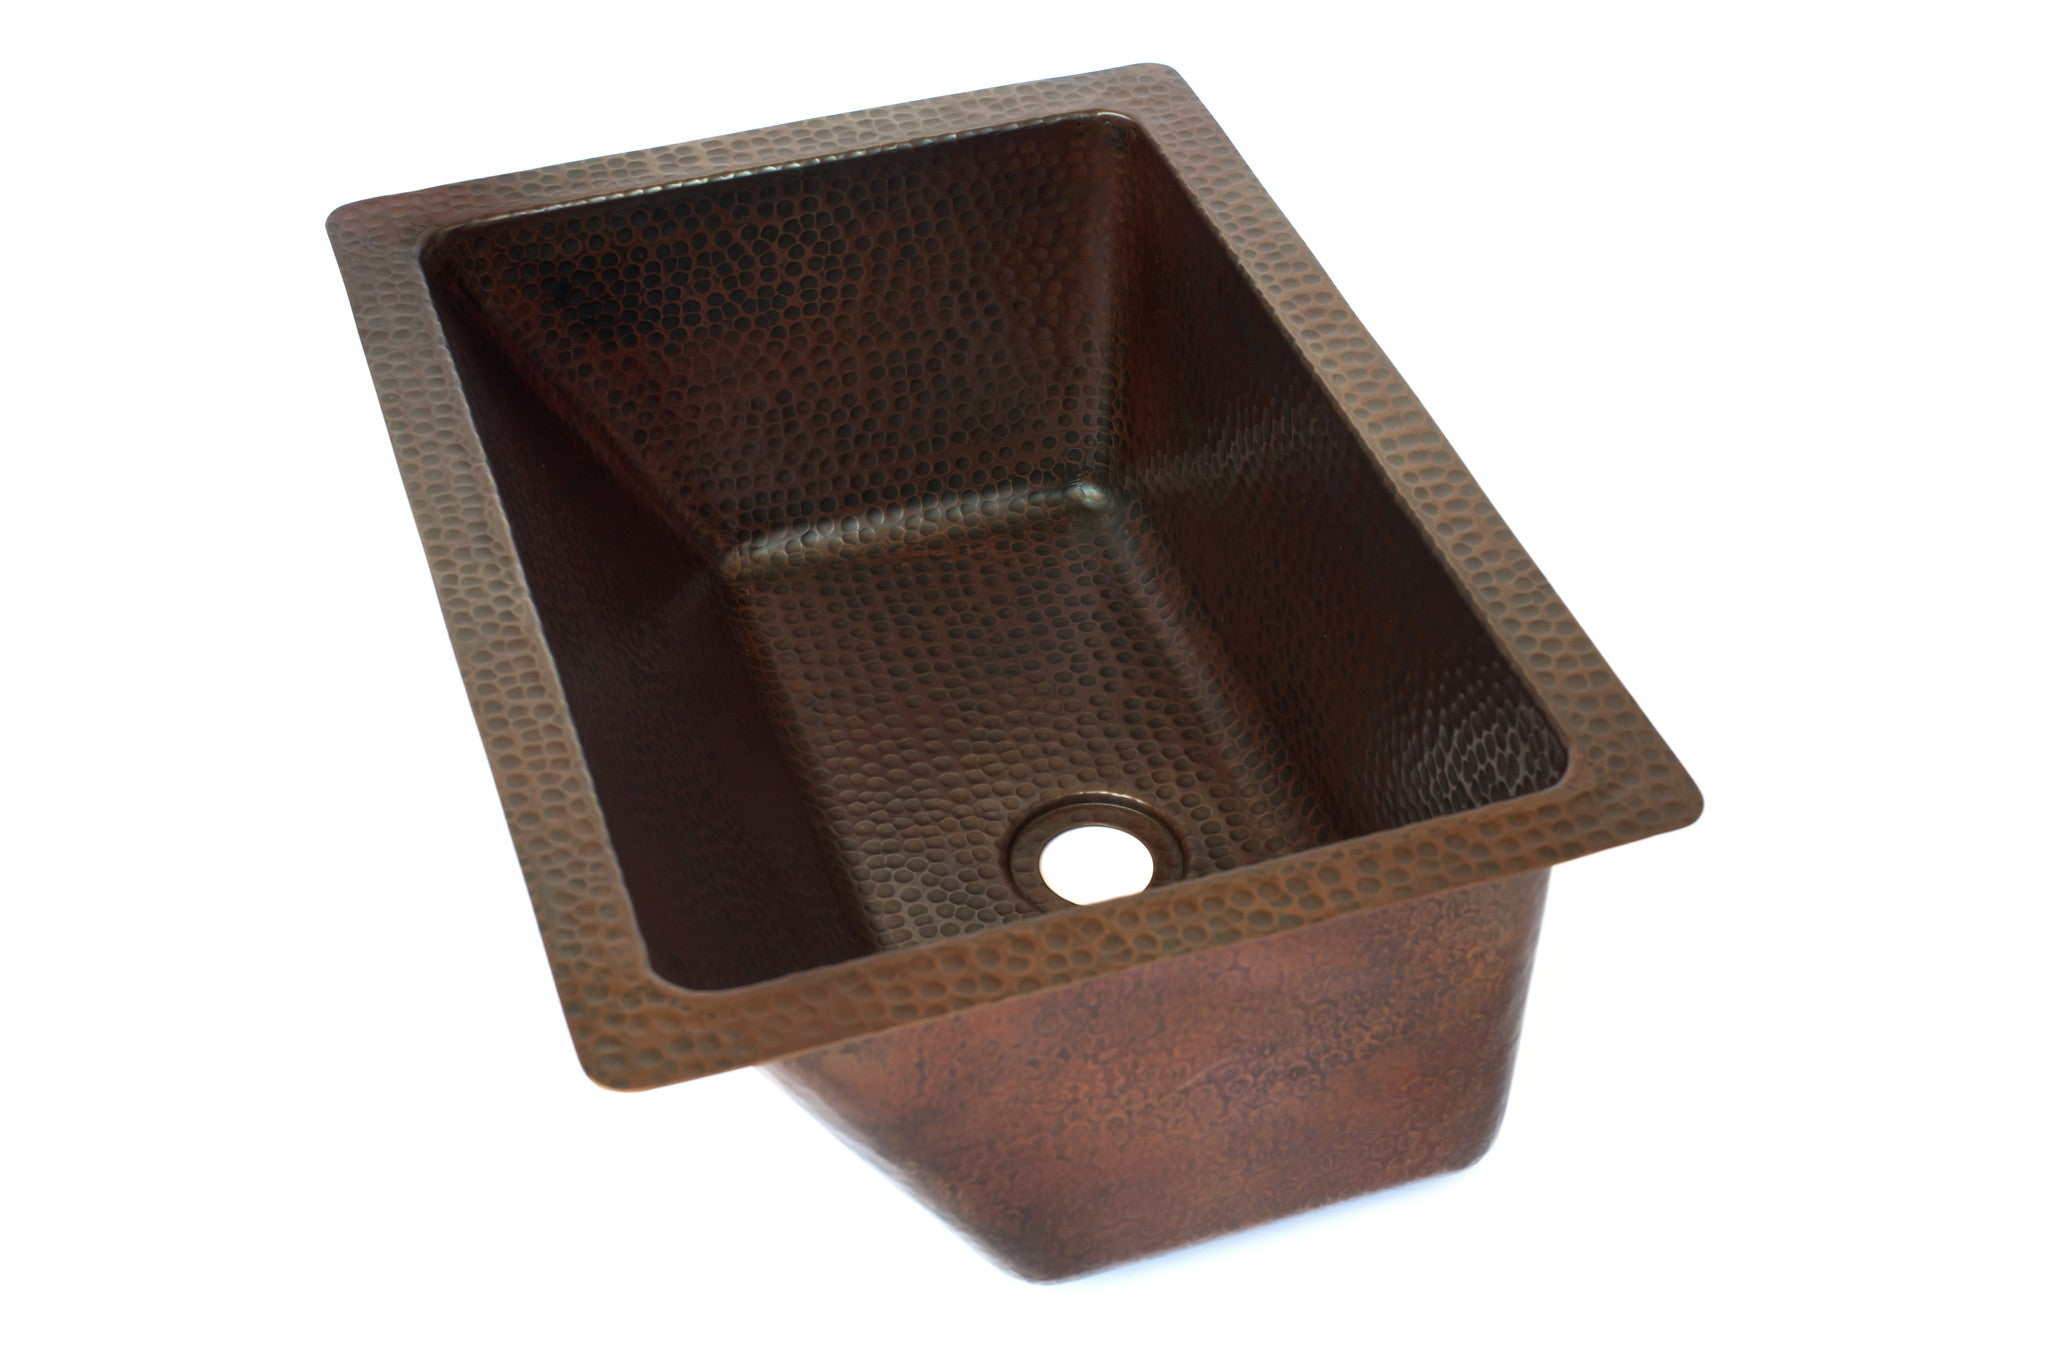 rectangular under mount bathroom copper sink with angled wall   16 x 12 x 7     gauge 16   bravo jr  rectangular under mount bathroom copper sink with angled wall      rh   copper alchemy com